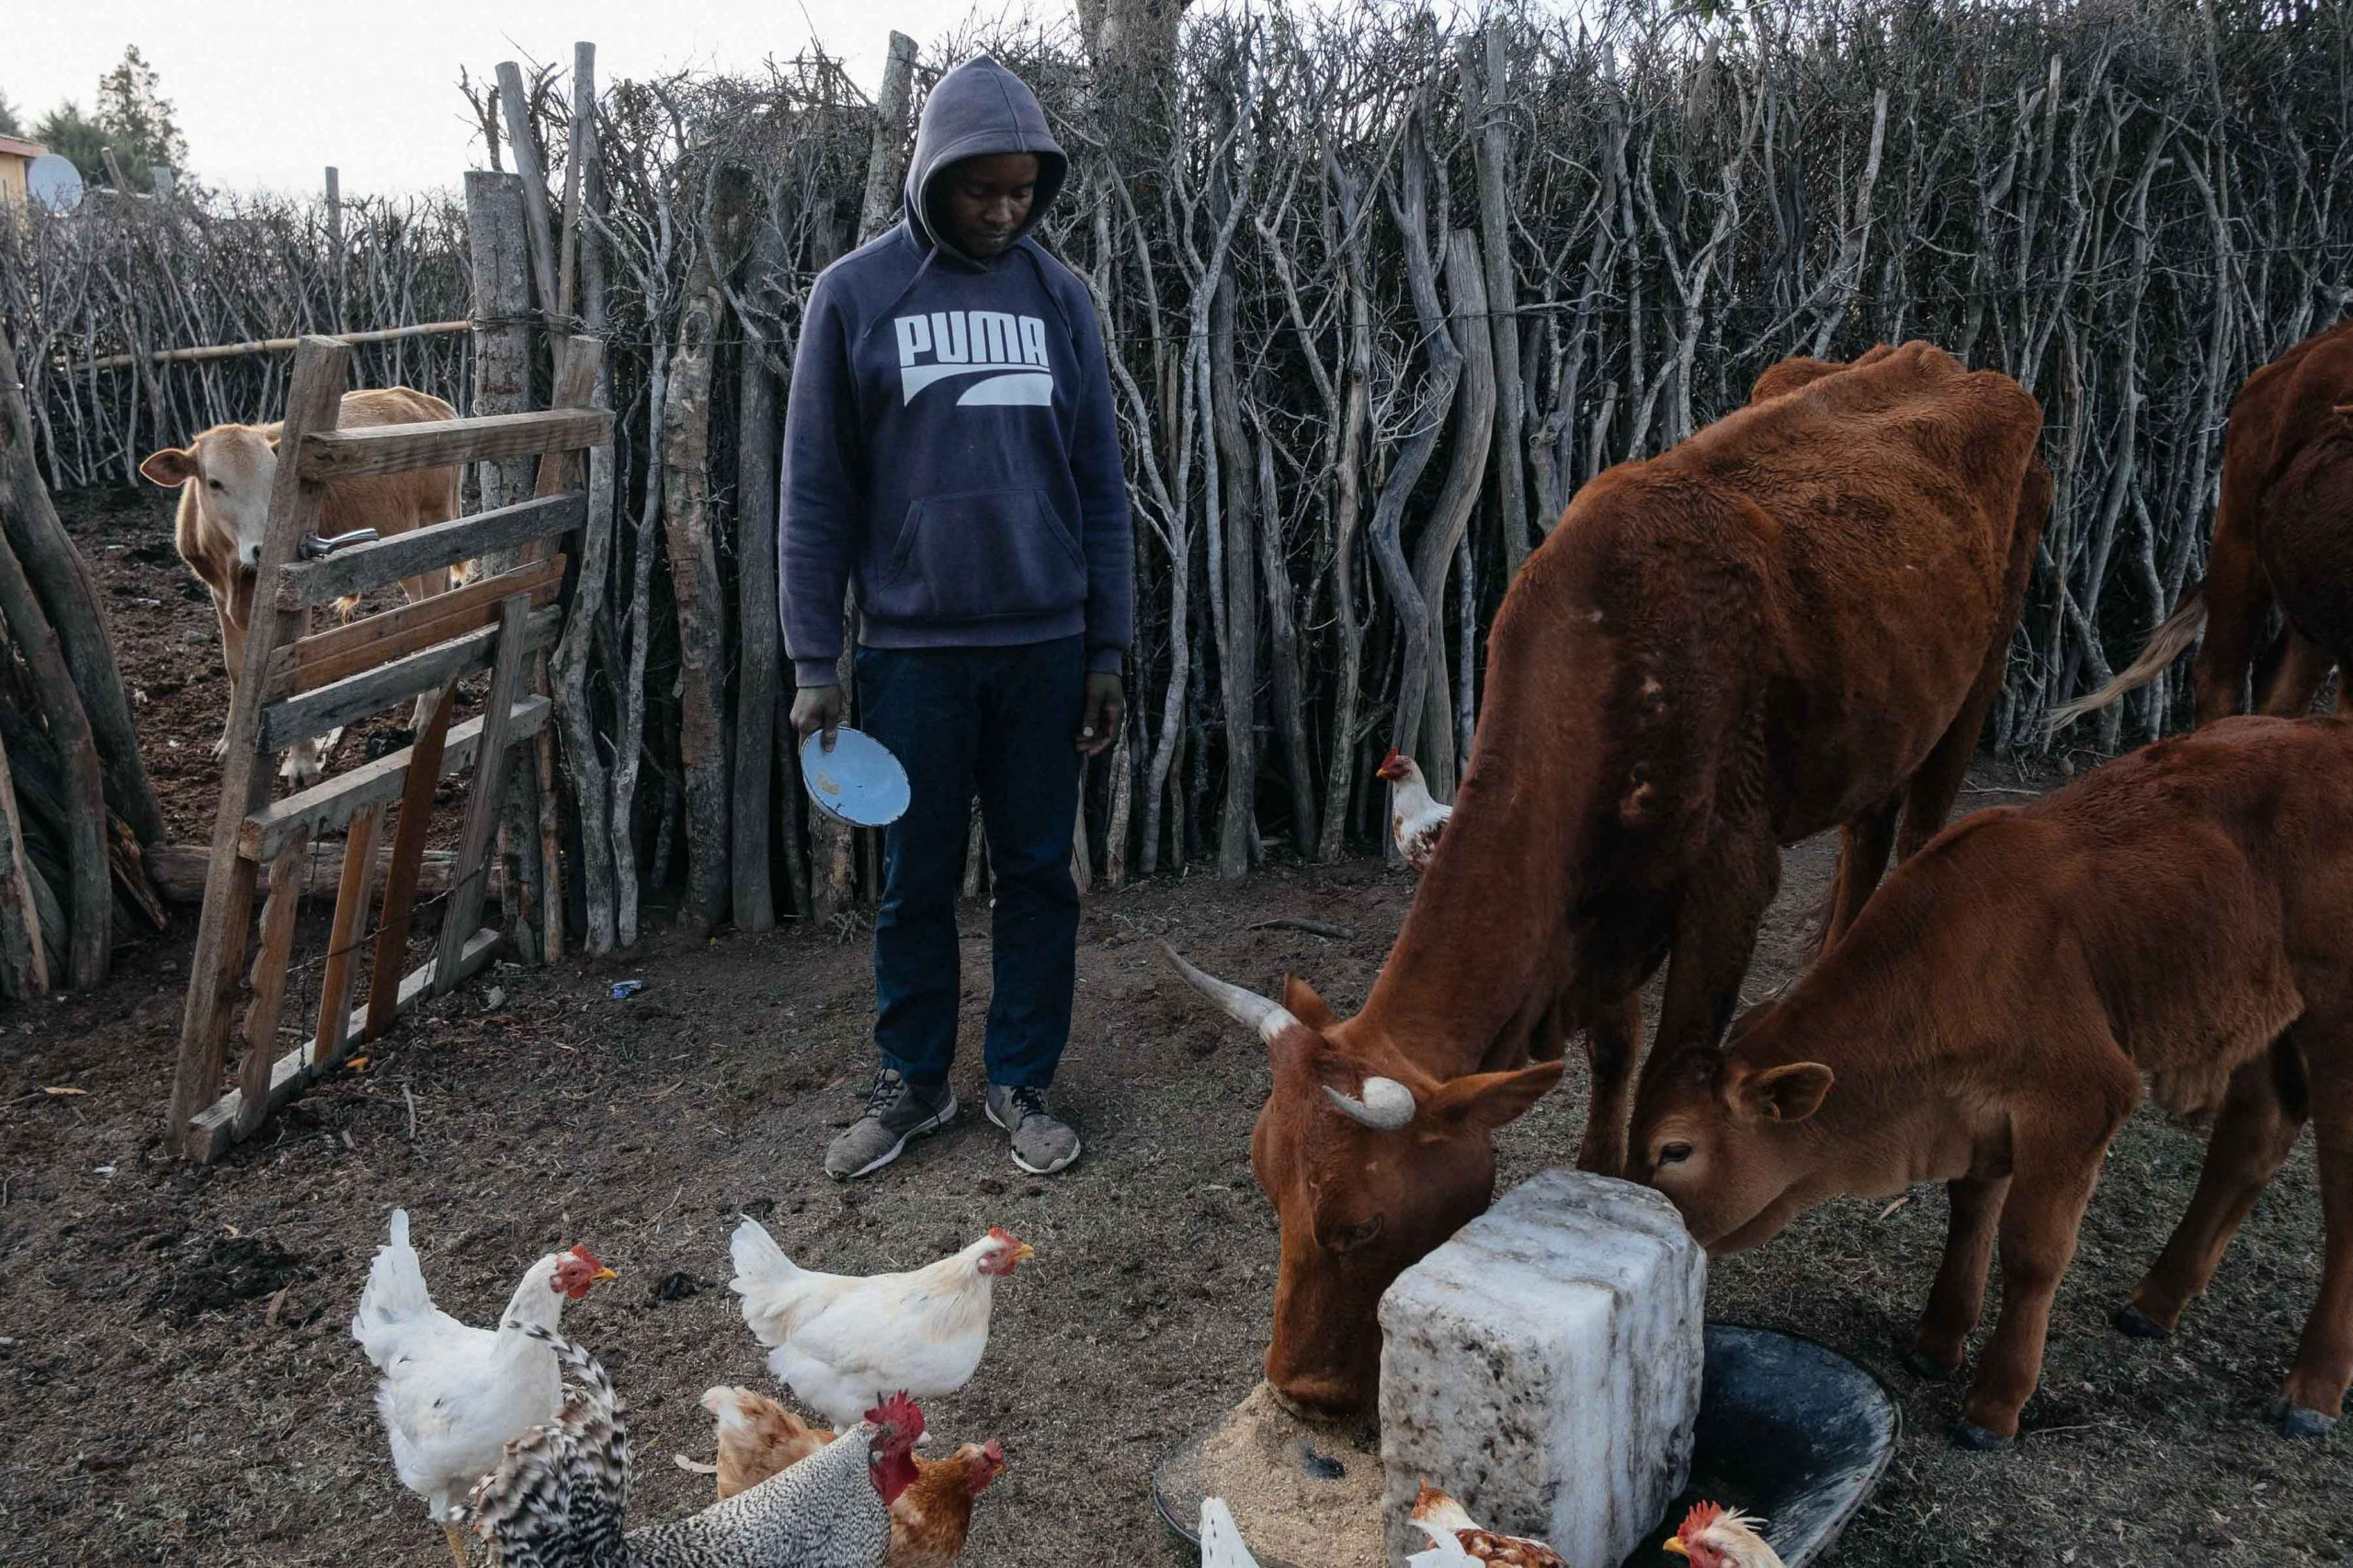 10 November 2019: Somila Sentwa, 29, gives his cattle supplementary feed at his kraal. Having to purchase food is putting additional financial pressure on already cash-strapped rural households.